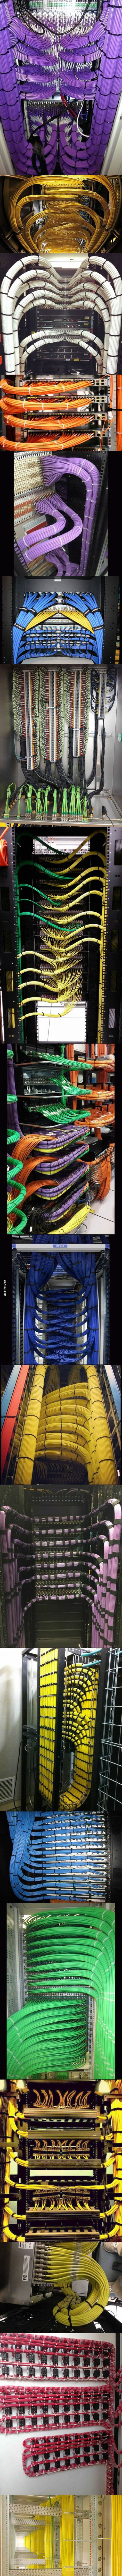 Beautiful Cable Management Inspirations Telcom Installs Computernetwork Wiring Cat5 Cat 6 Phone We Love Seeing Like This